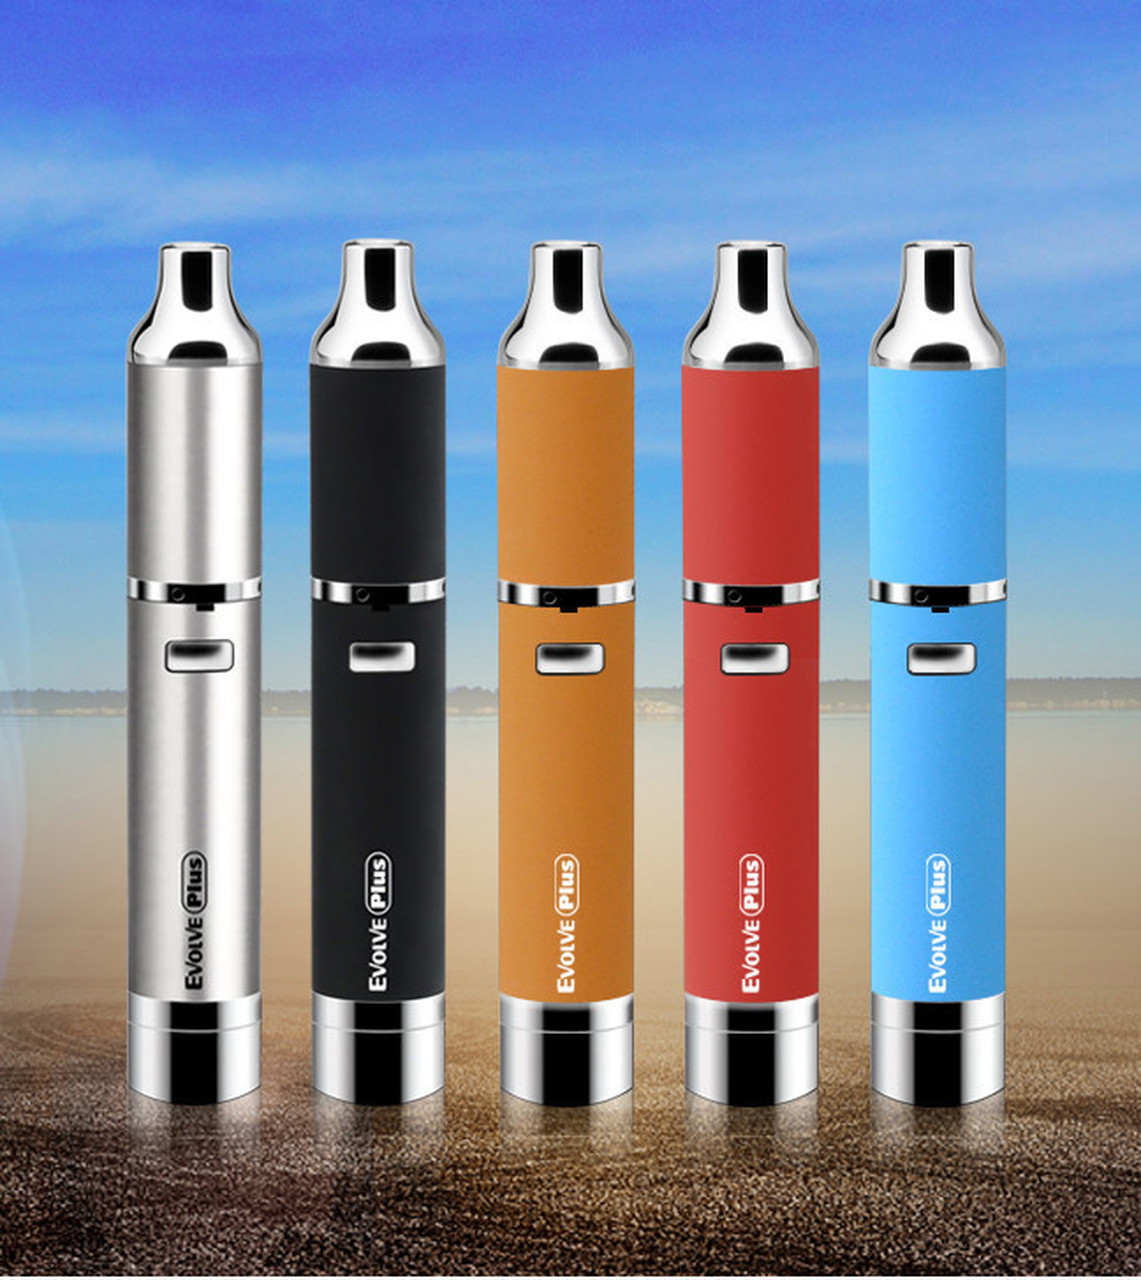 EVOLVE PLUS YOCAN VAPORIZER